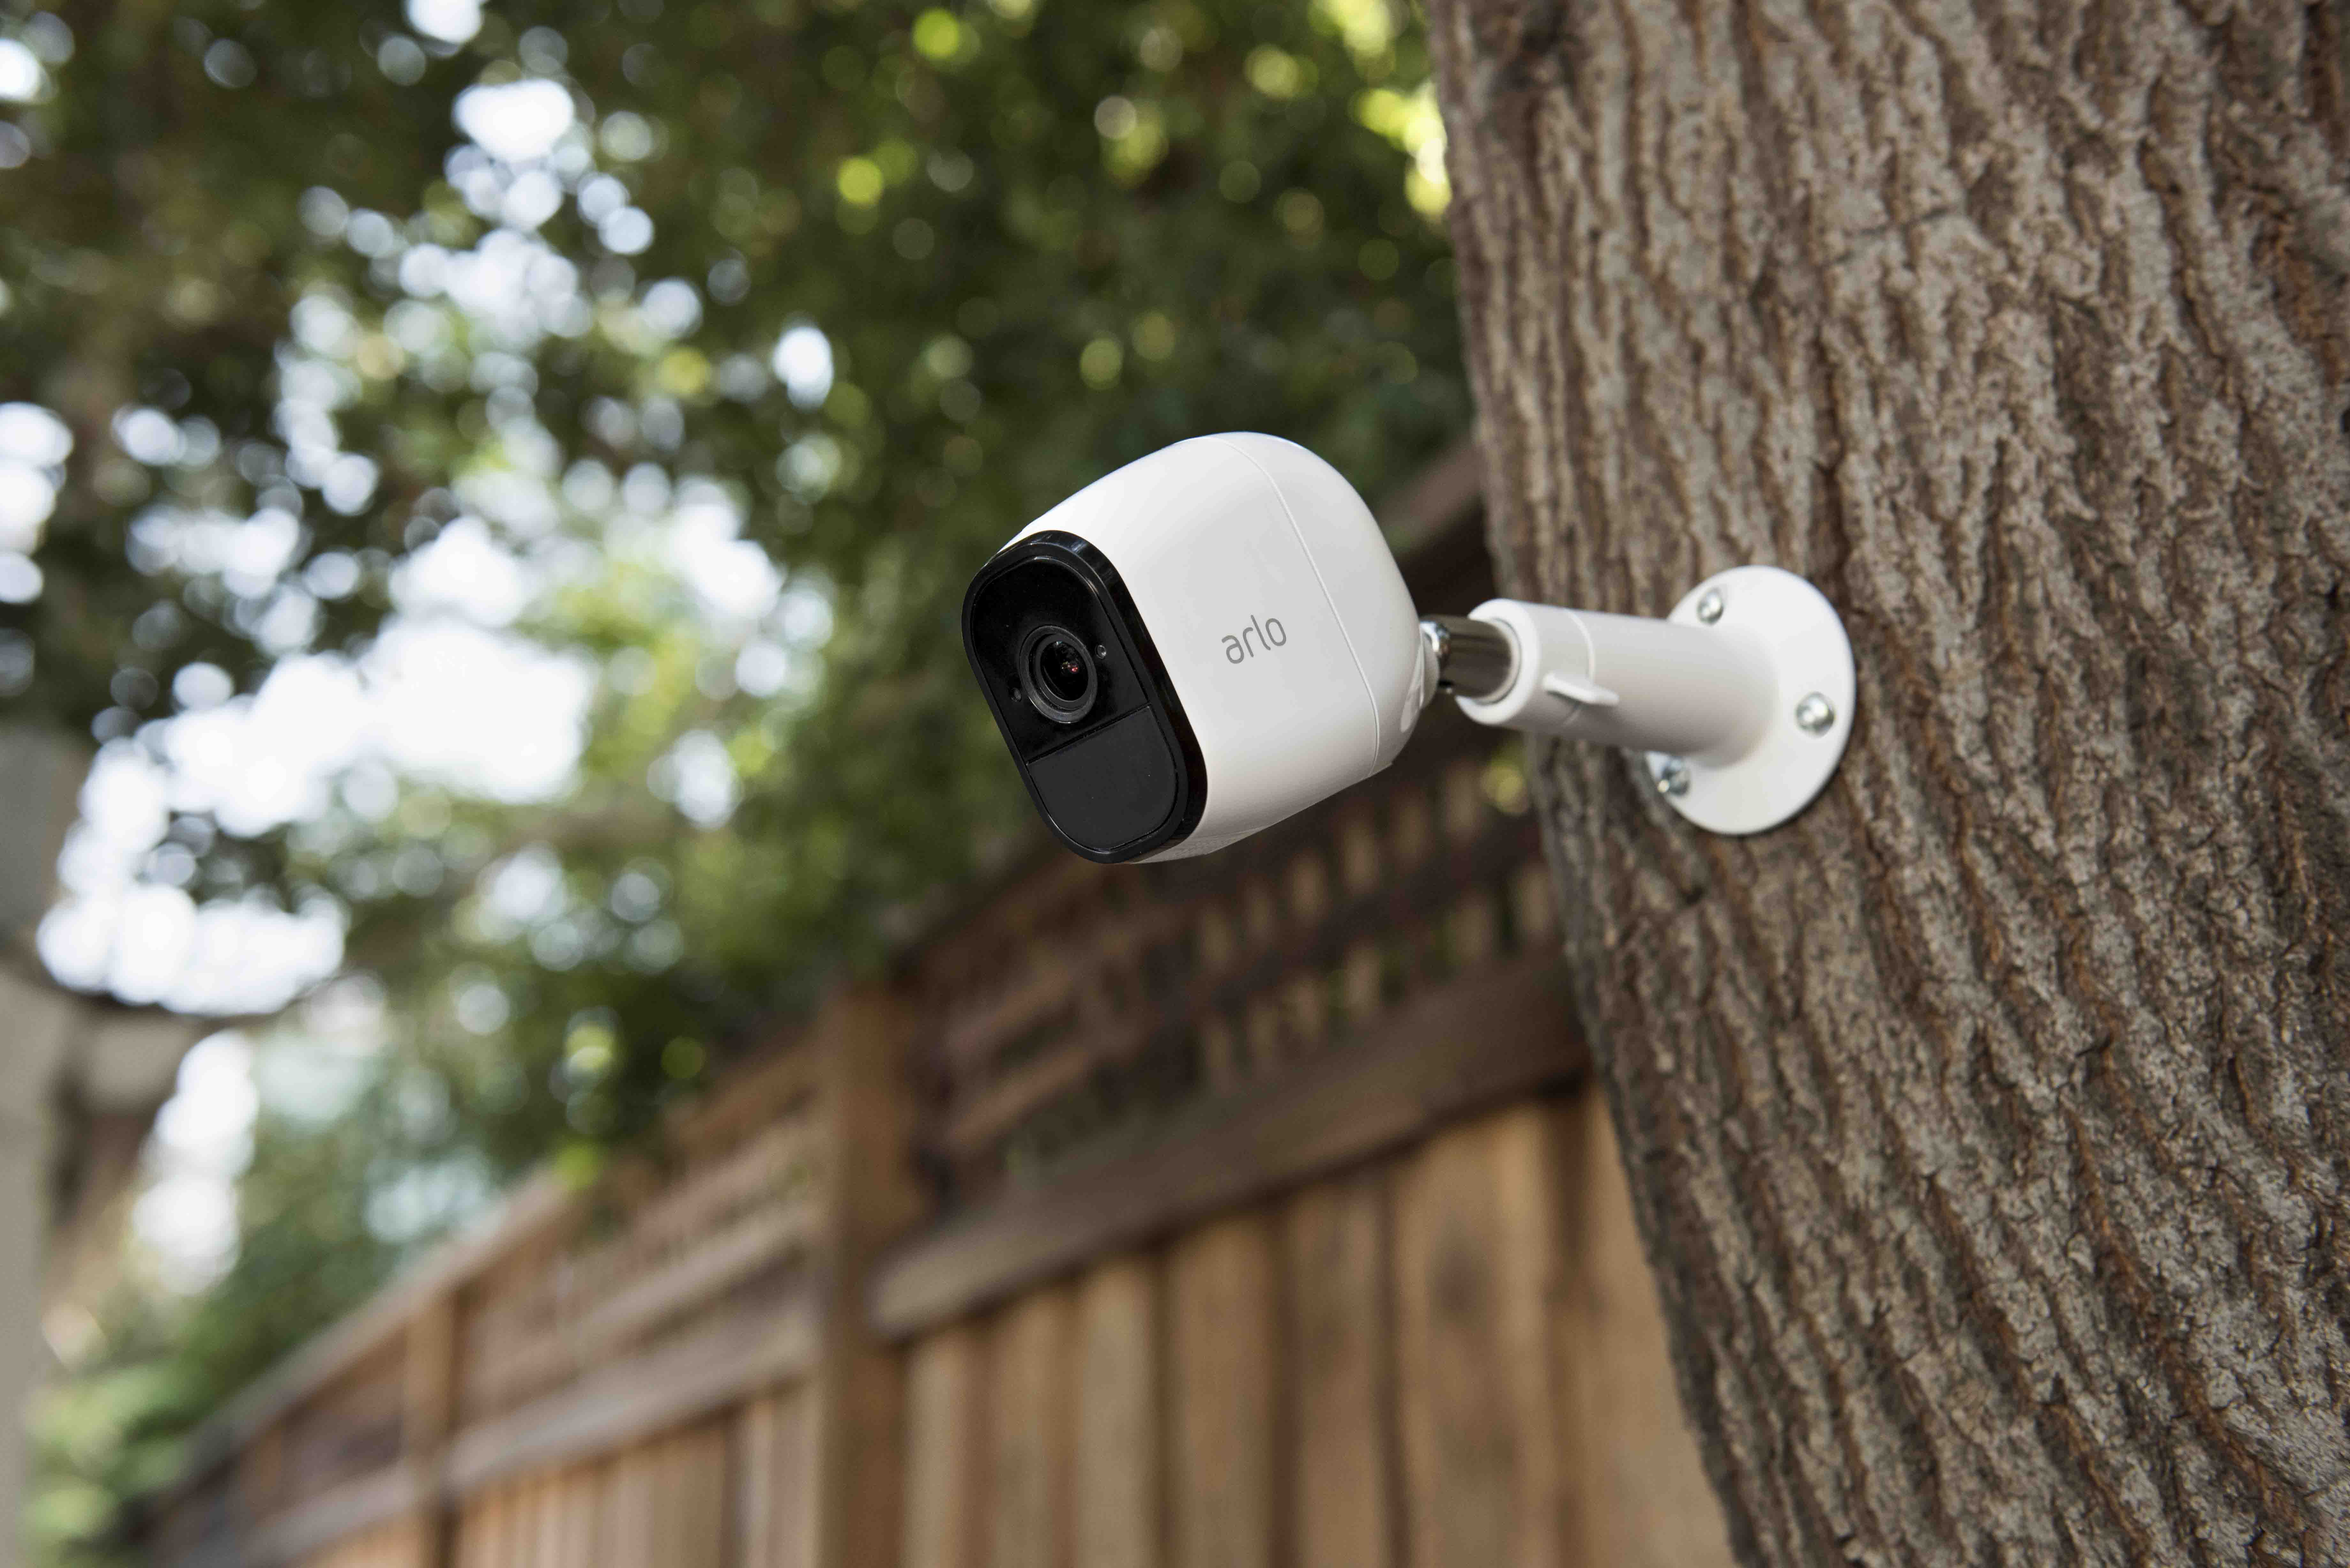 Netgear claims its new wireless security camera lasts six months on a single charge